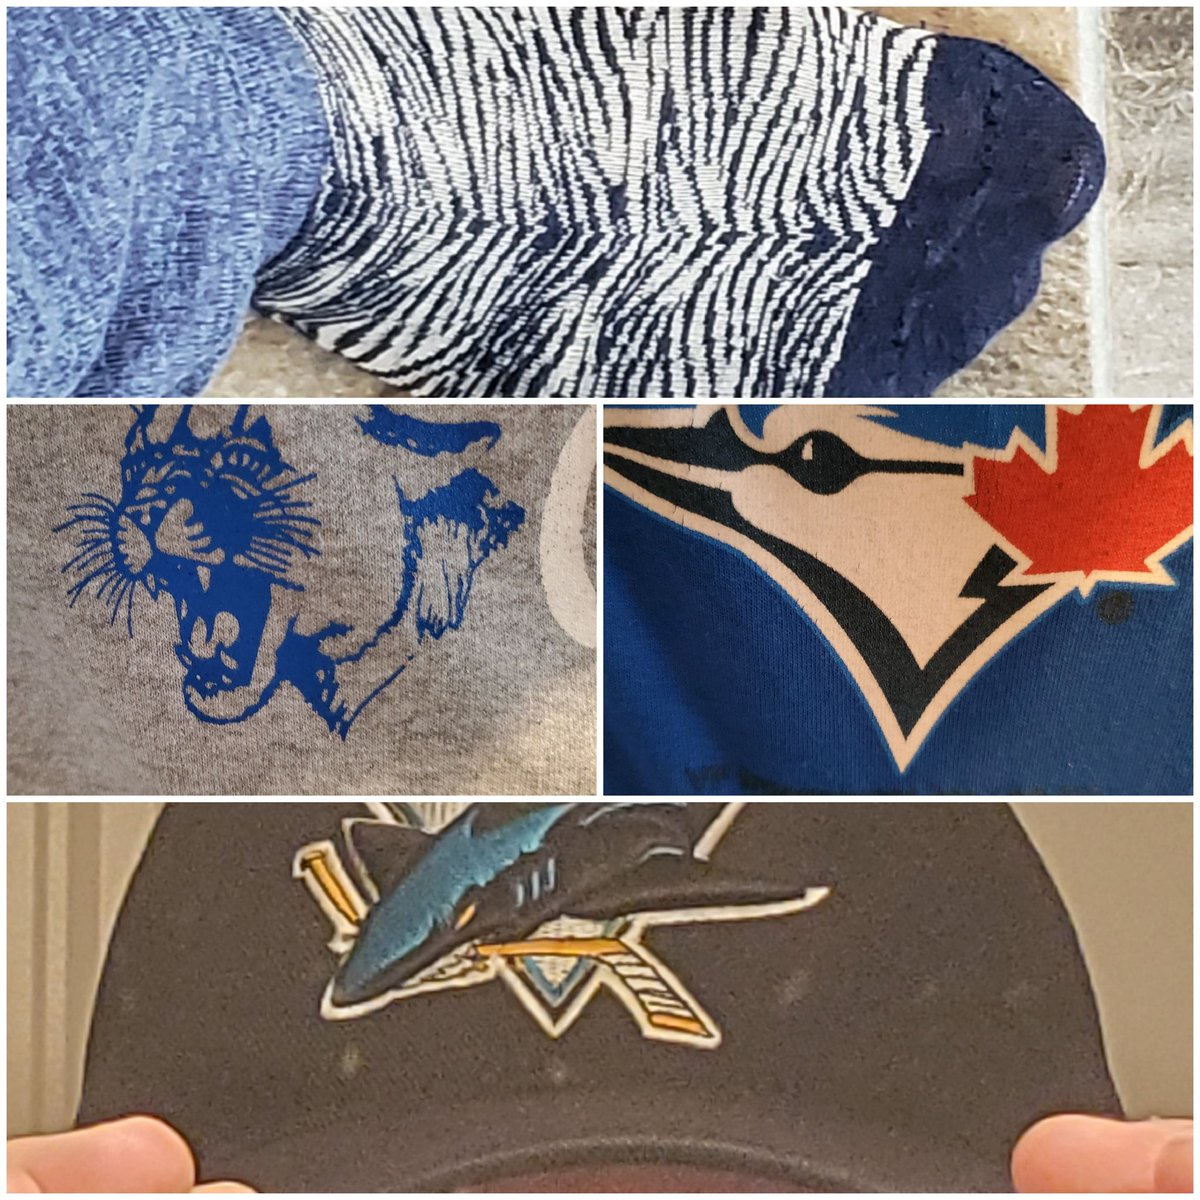 Not ONLY am I rocking these Zebra print socks, but I'm also representing the @MilestoneCougs, the @BlueJays, and you guessed it...the @SanJoseSharks! So many animals this #smellsliketeamspirit Friday! pic.twitter.com/ggl5VXQ5XG